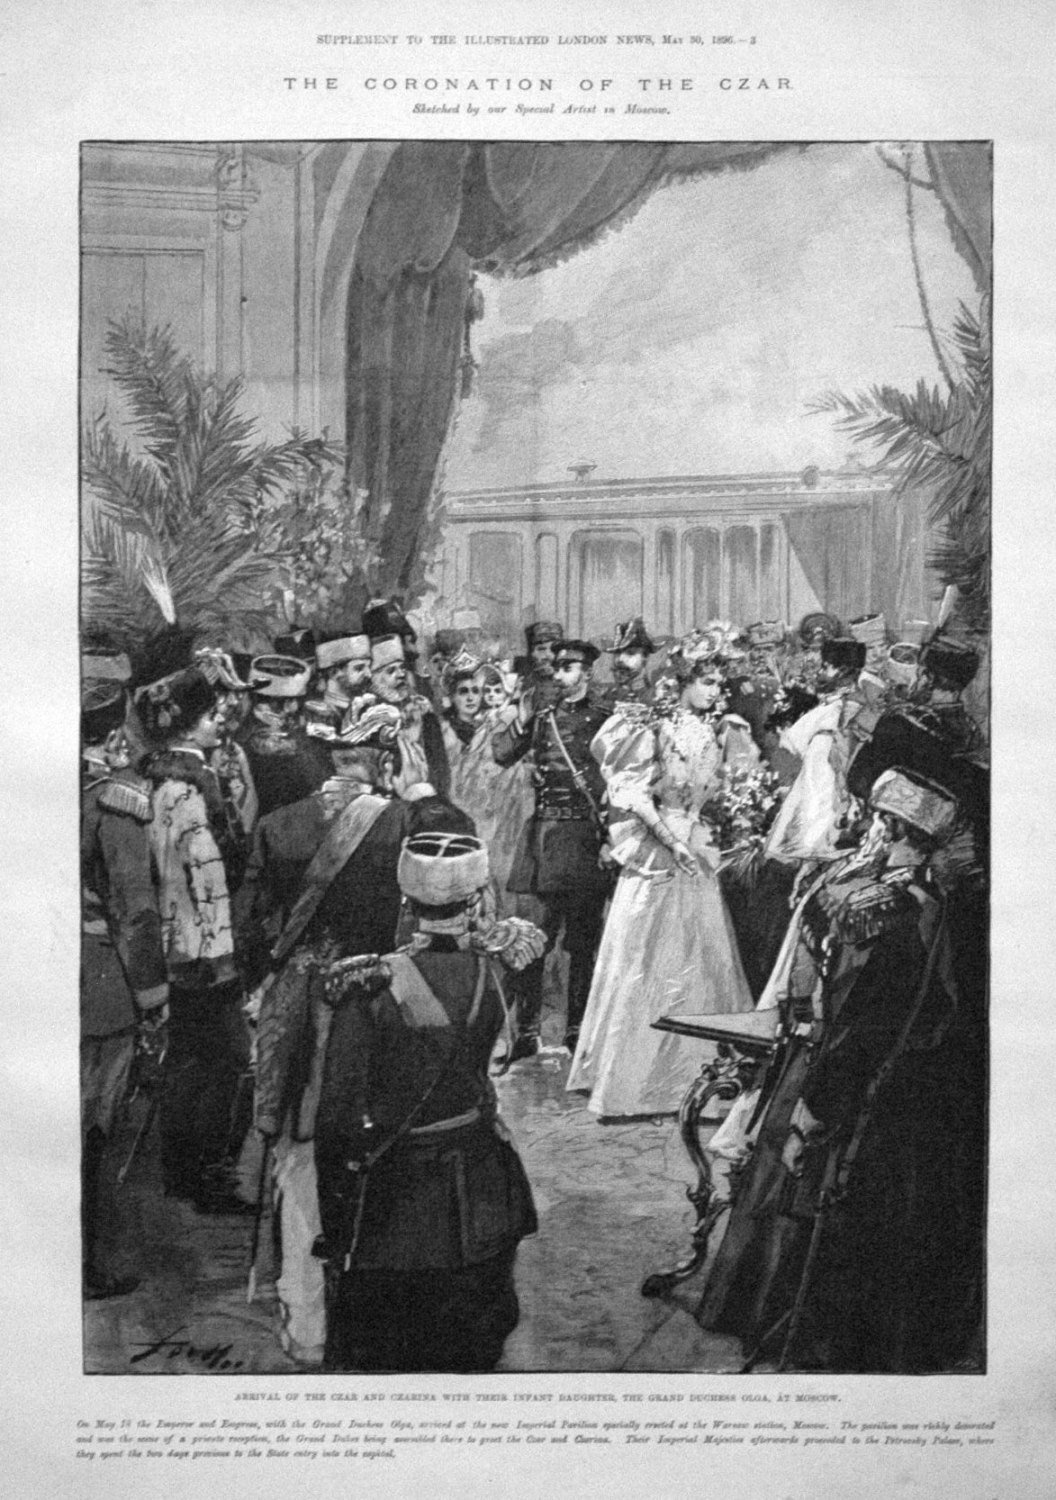 The Coronation of the Czar. Arrival of the Czar and Czarina with their Infa